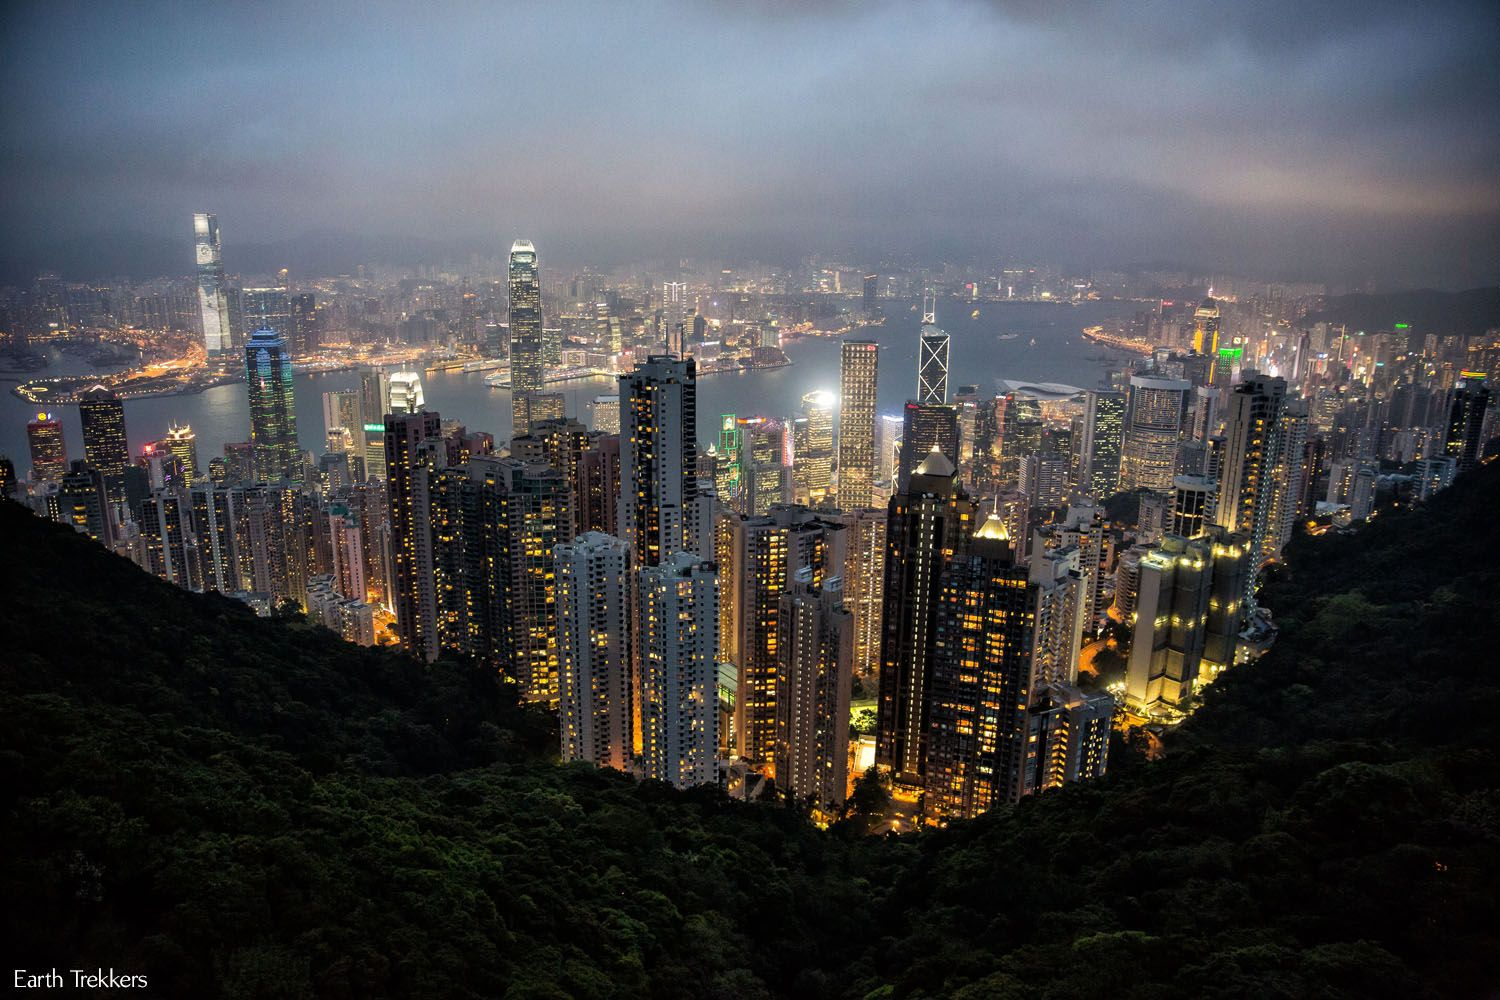 With four days in Hong Kong we took the Peak Tram to Victoria Peak, saw Mong Kok, Hong Kong Disneyland, and made a day trip to Macau.